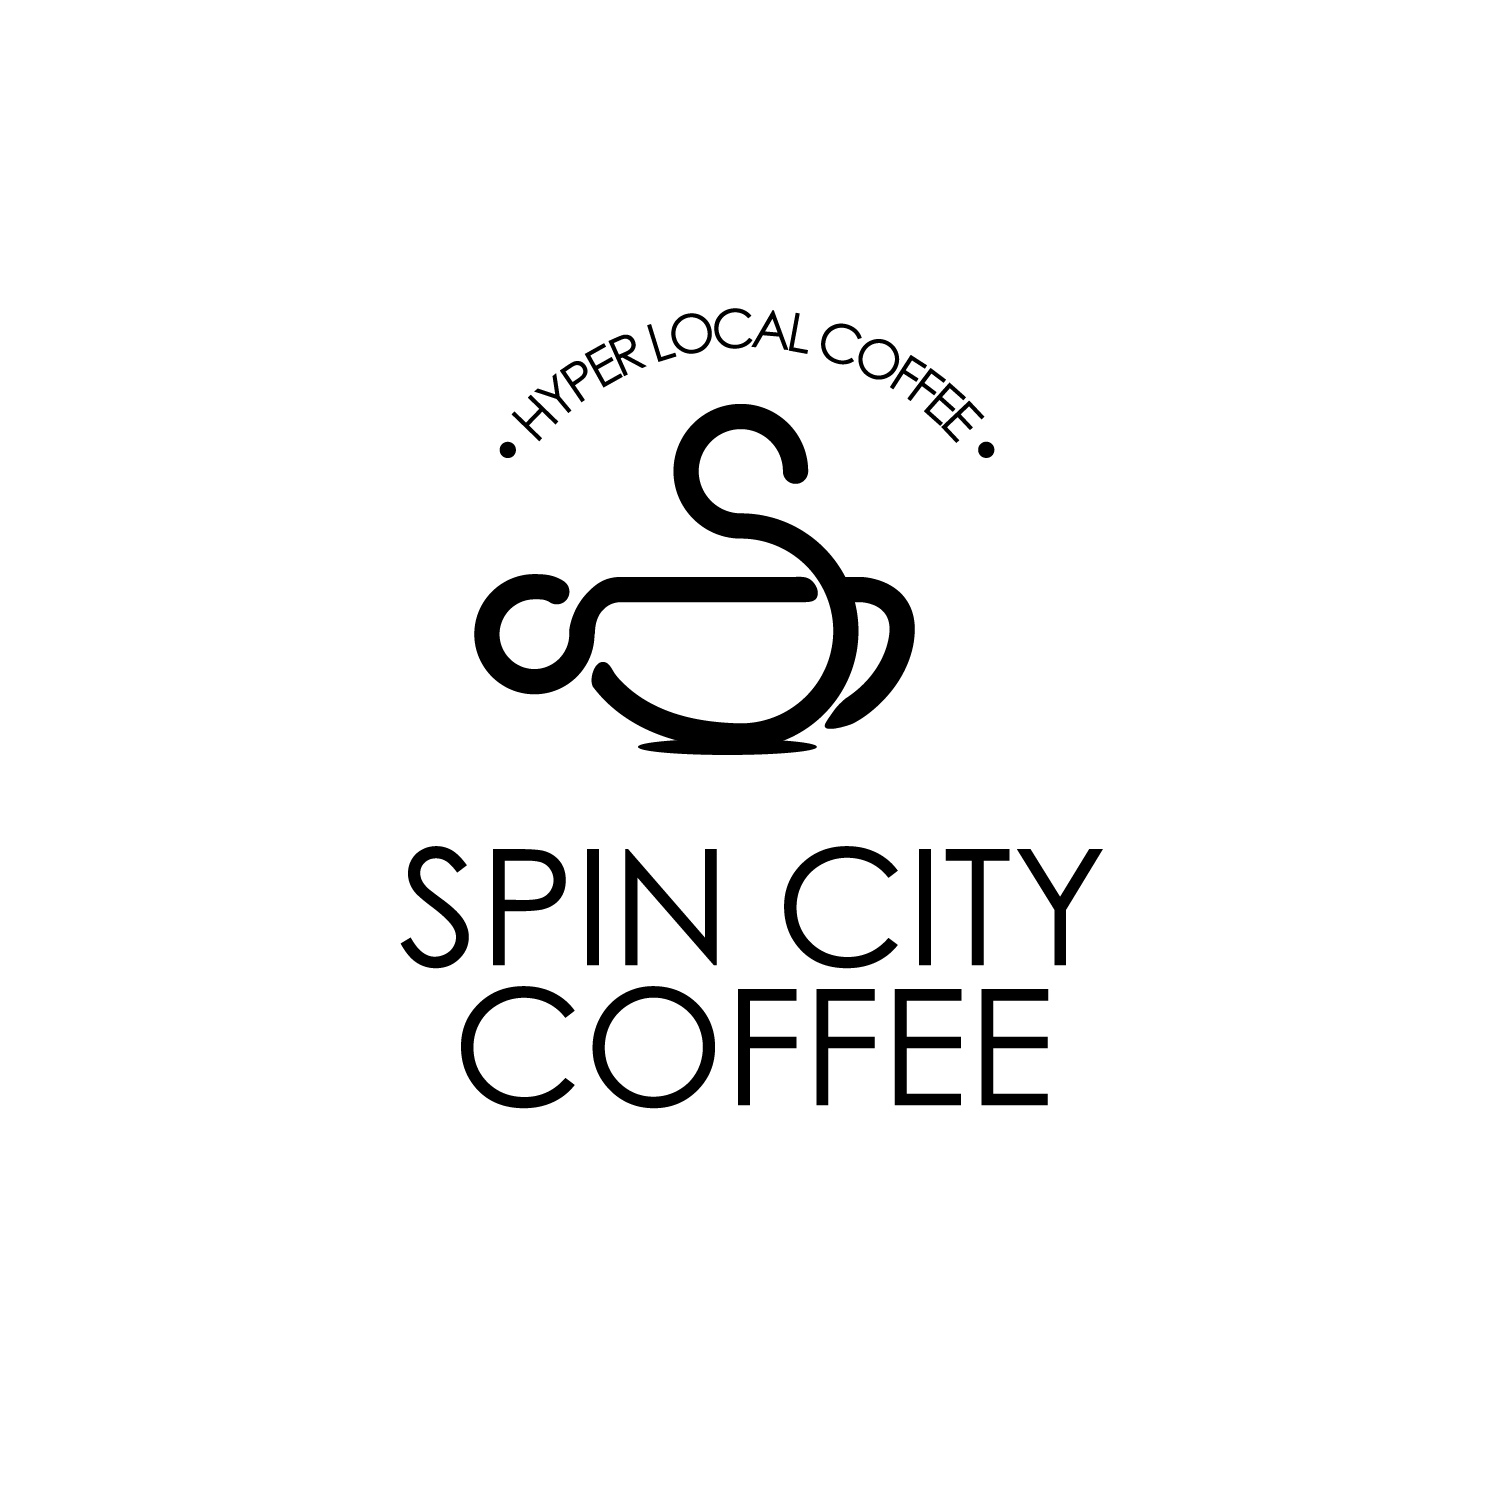 Spin City Coffee, San Francisco, CA logo